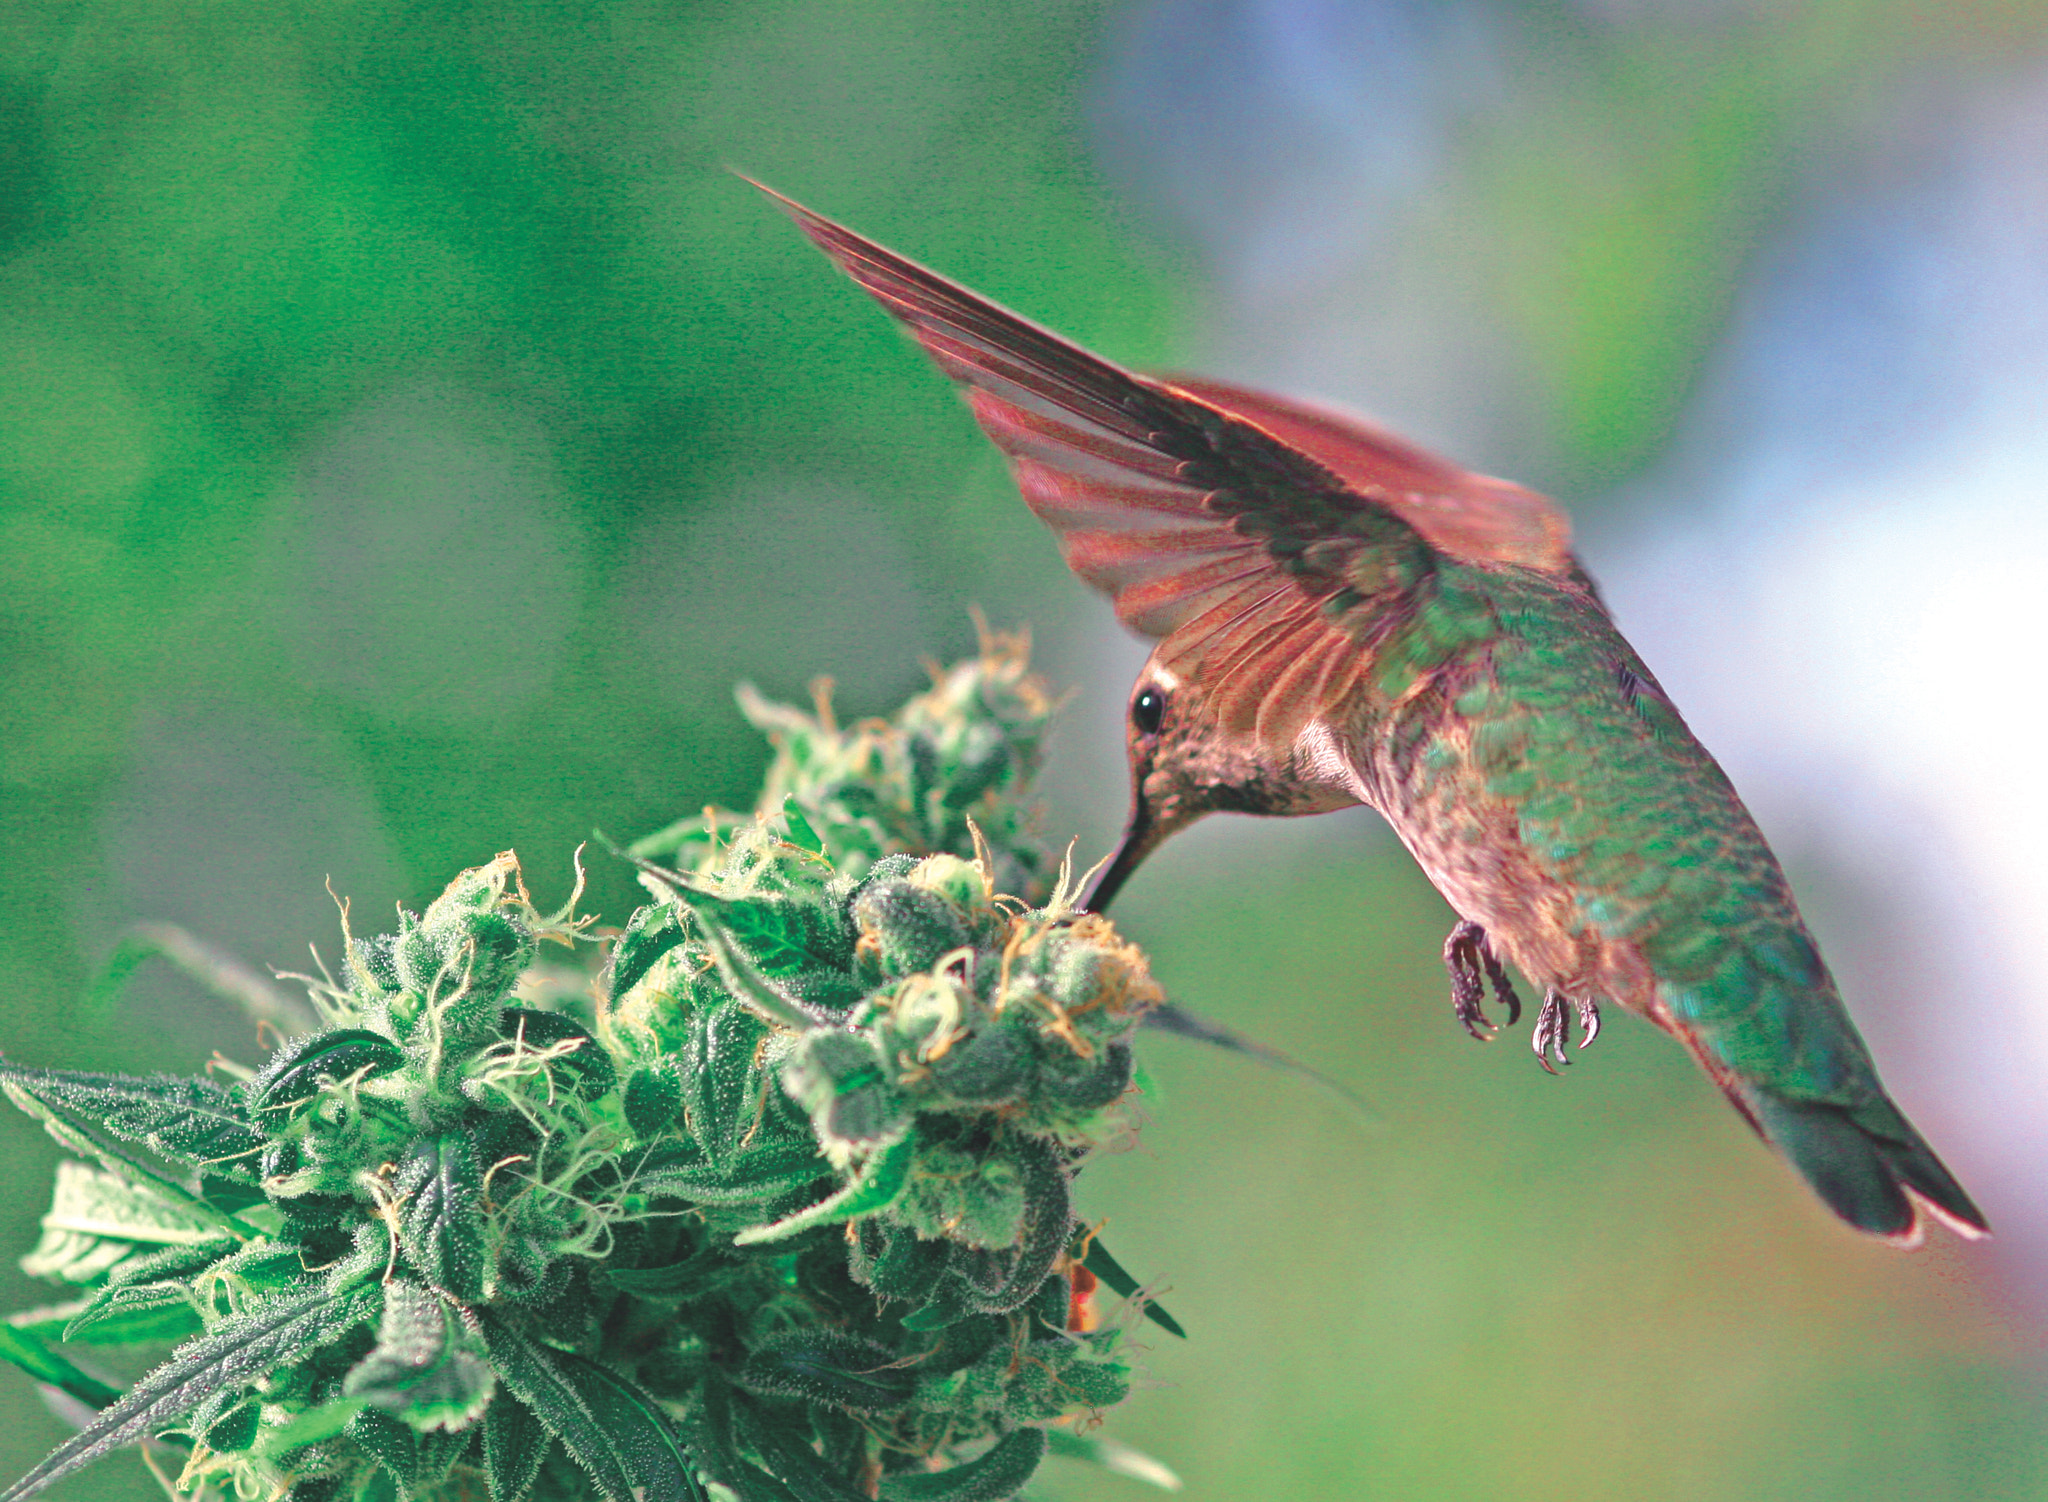 Bird on weed bud